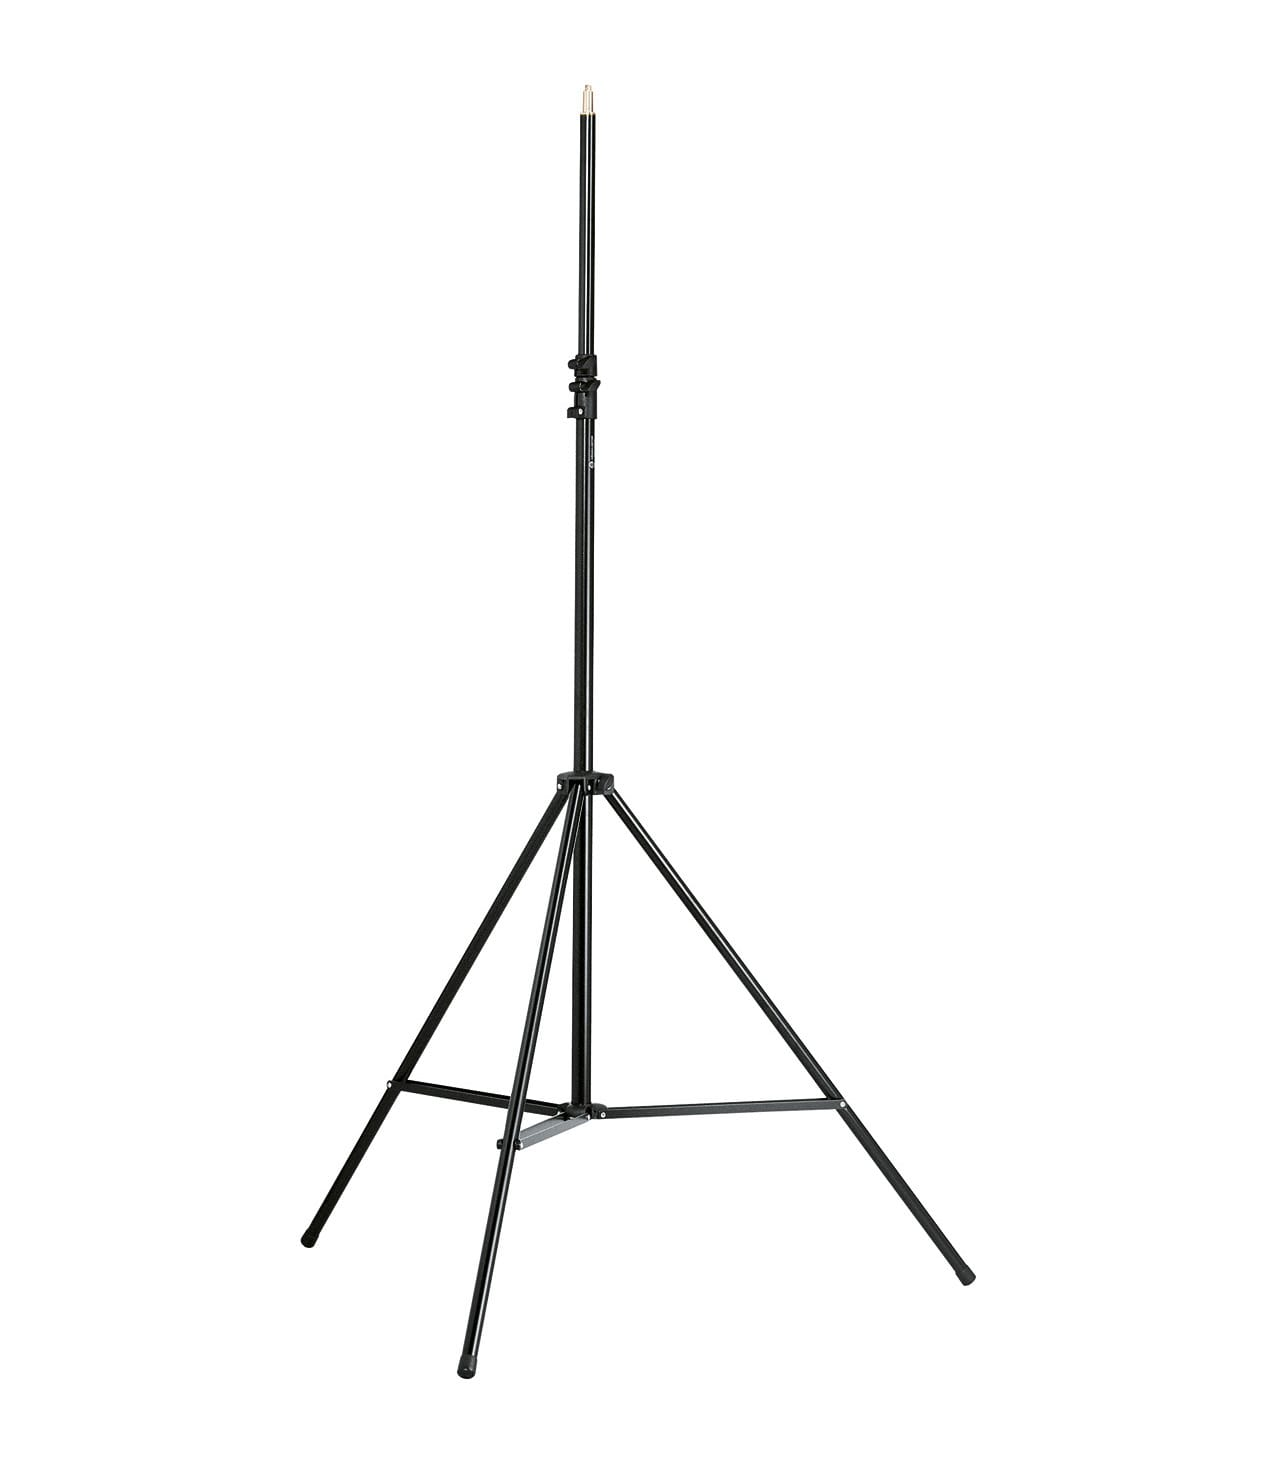 K&M - 21411 400 55 Overhead microphone standblack - Melody House Musical Instruments